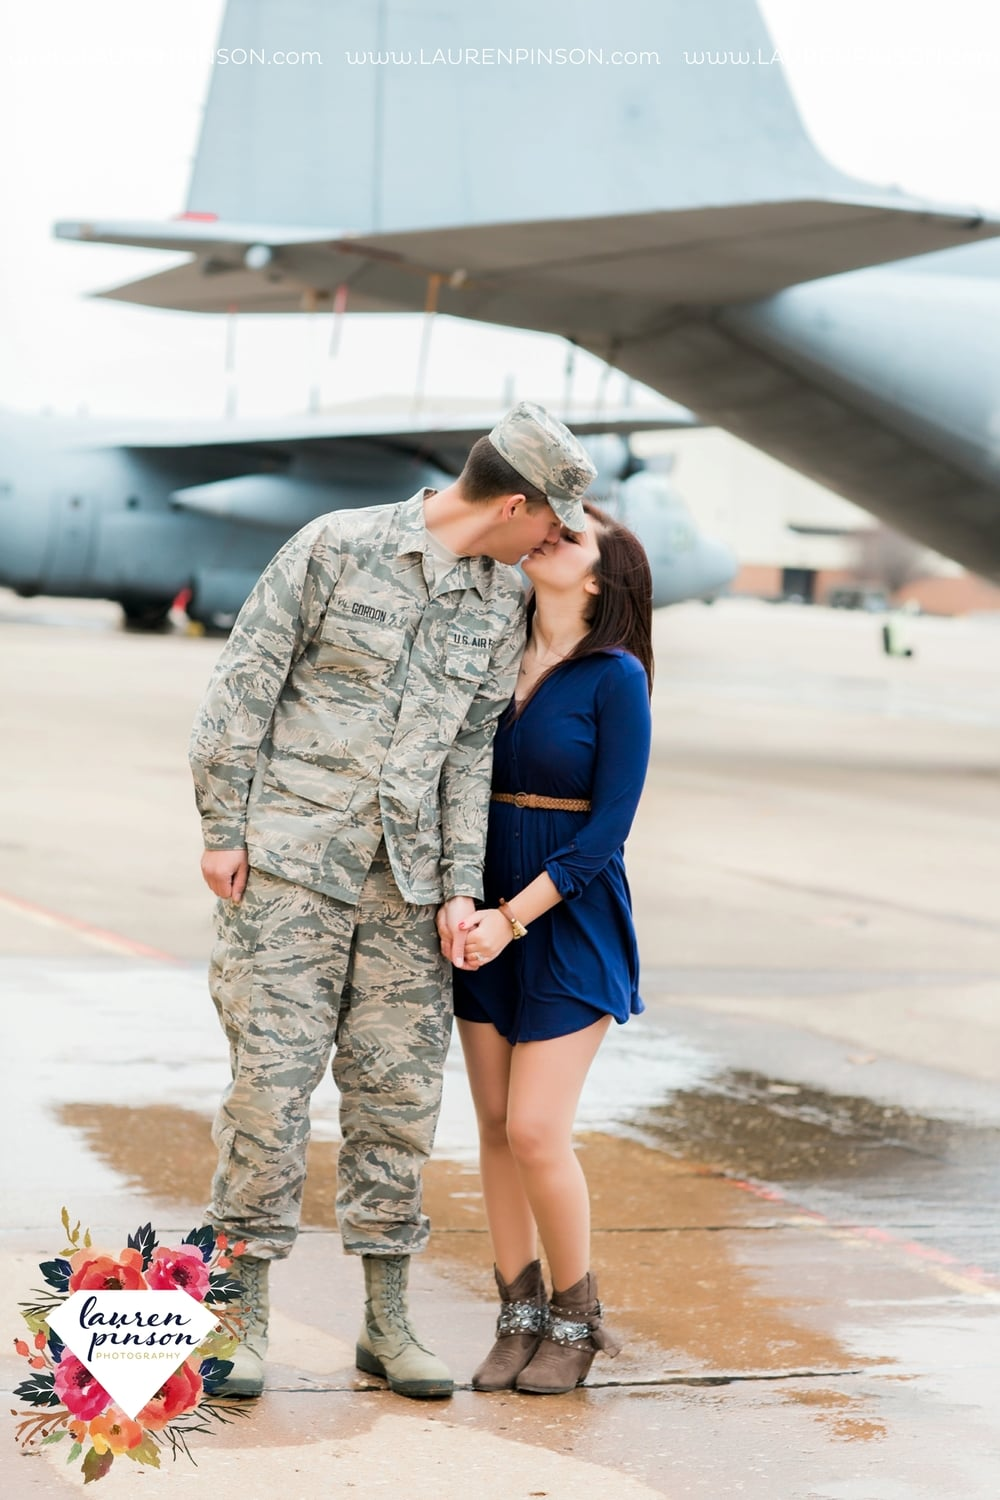 sheppard-afb-wichita-falls-engagement-session-airmen-in-uniform-abu-airplanes-bride-engagement-ring-texas-air-force-base_2001.jpg